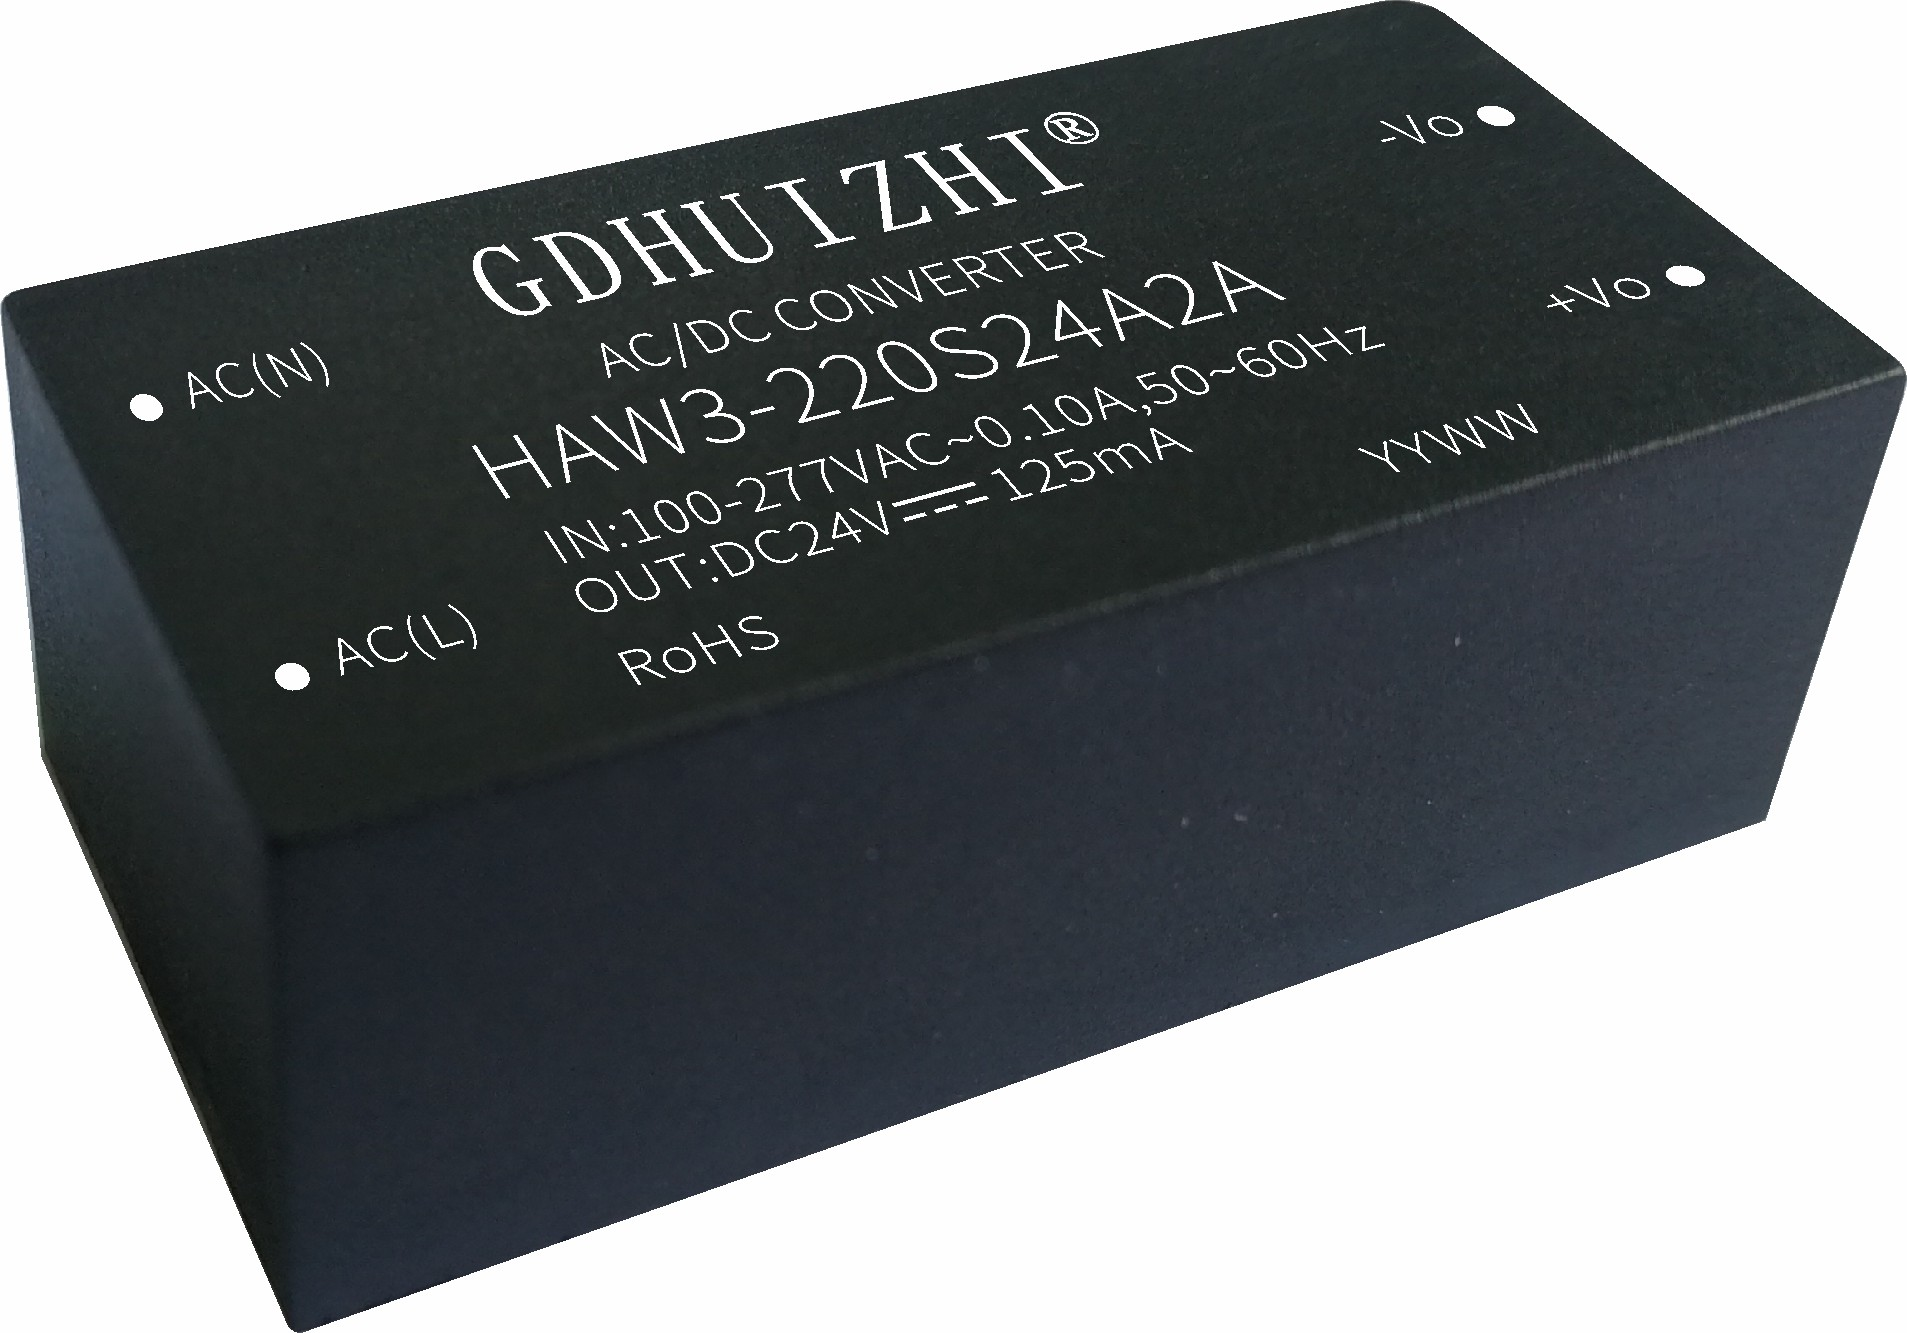 HAW3-220S24A2A